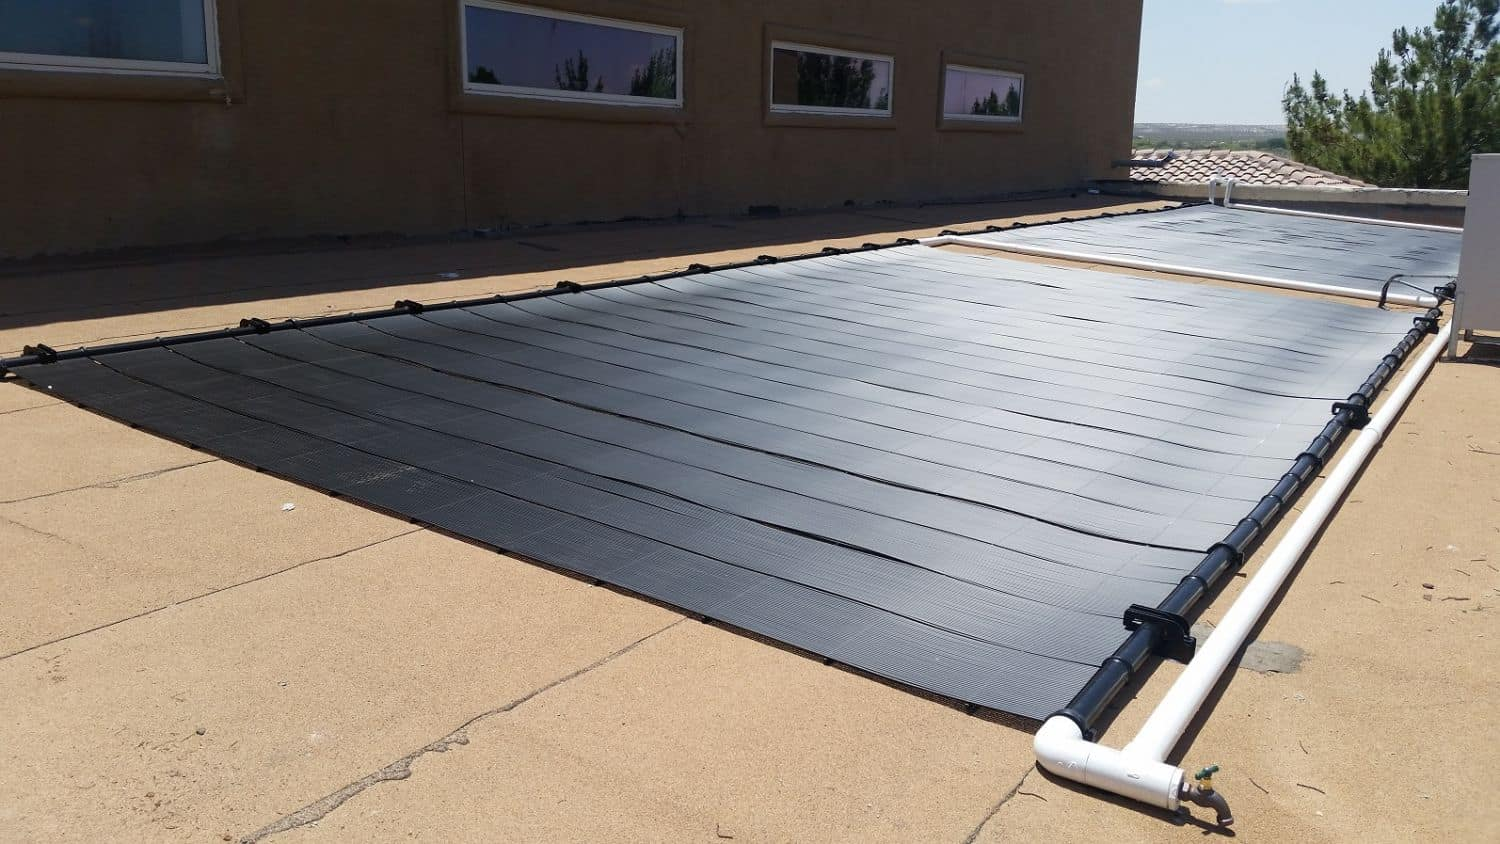 Solar energy panels power systems el paso lubbock tx for Marty robbins swimming pool el paso